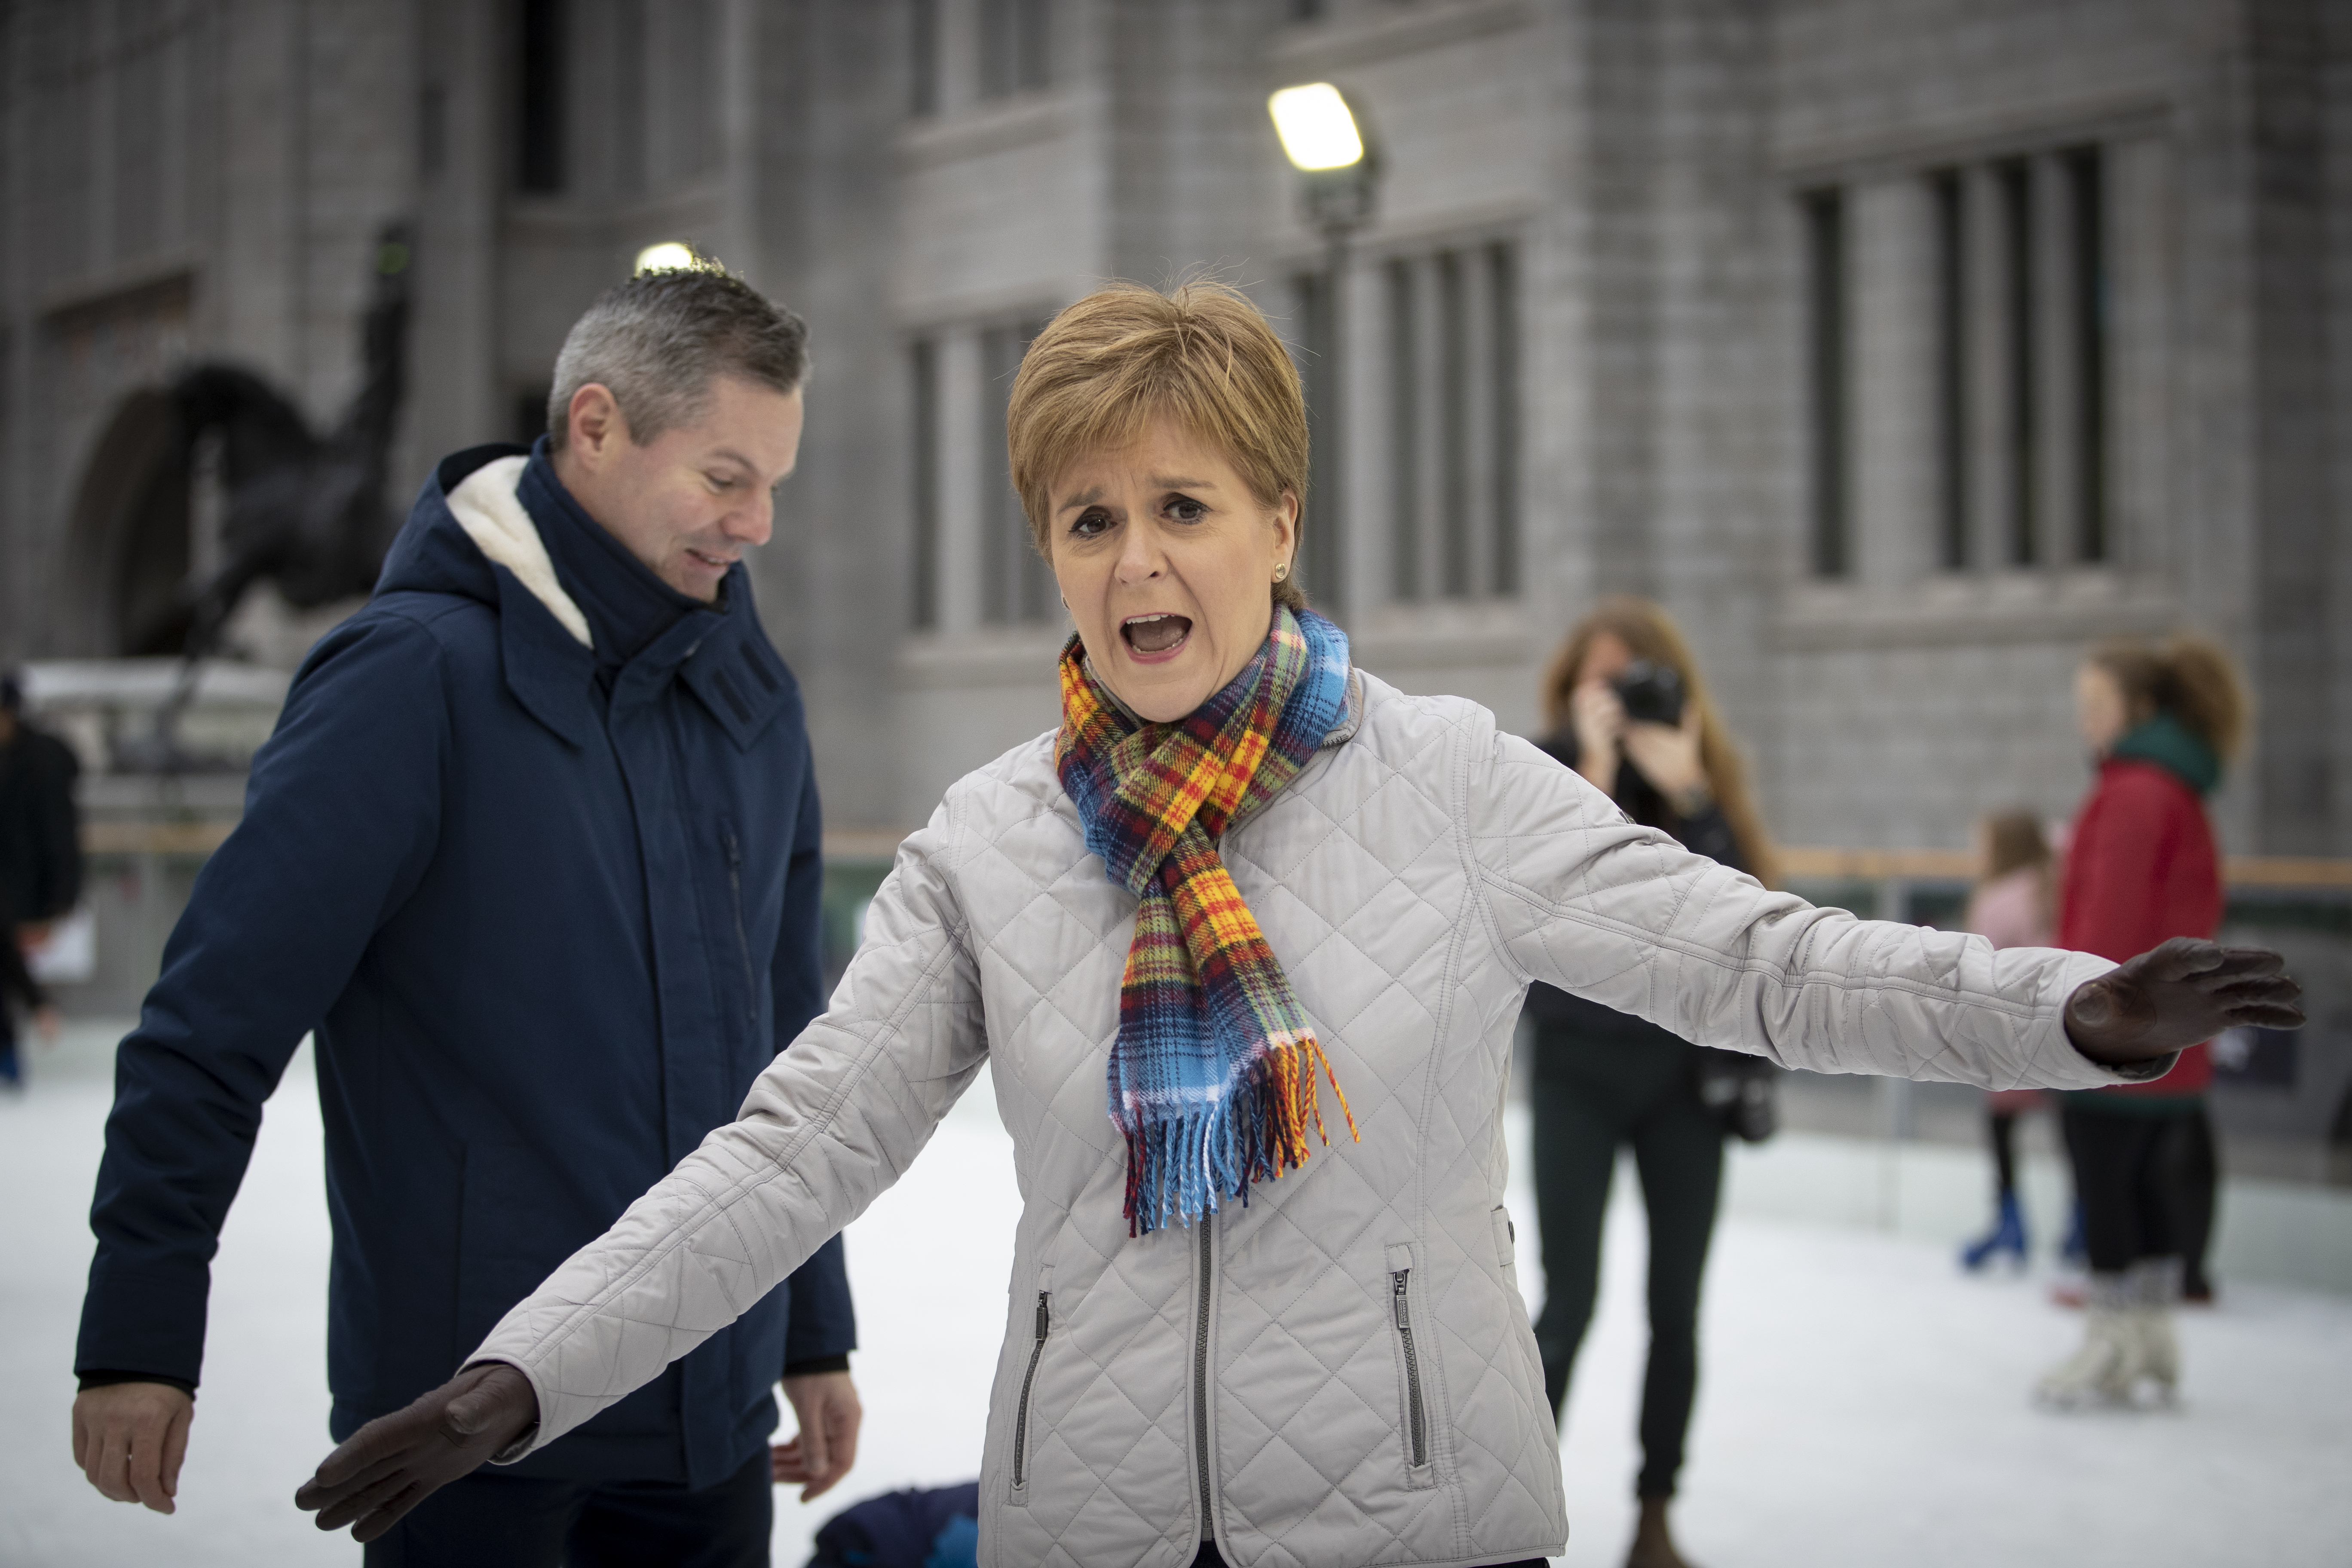 SNP leader Nicola Sturgeon and Finance Secretary Derek Mackay ice skate during a visit to the Aberdeen Christmas Market in The Quad, Marischal College, on the General Election campaign trail.